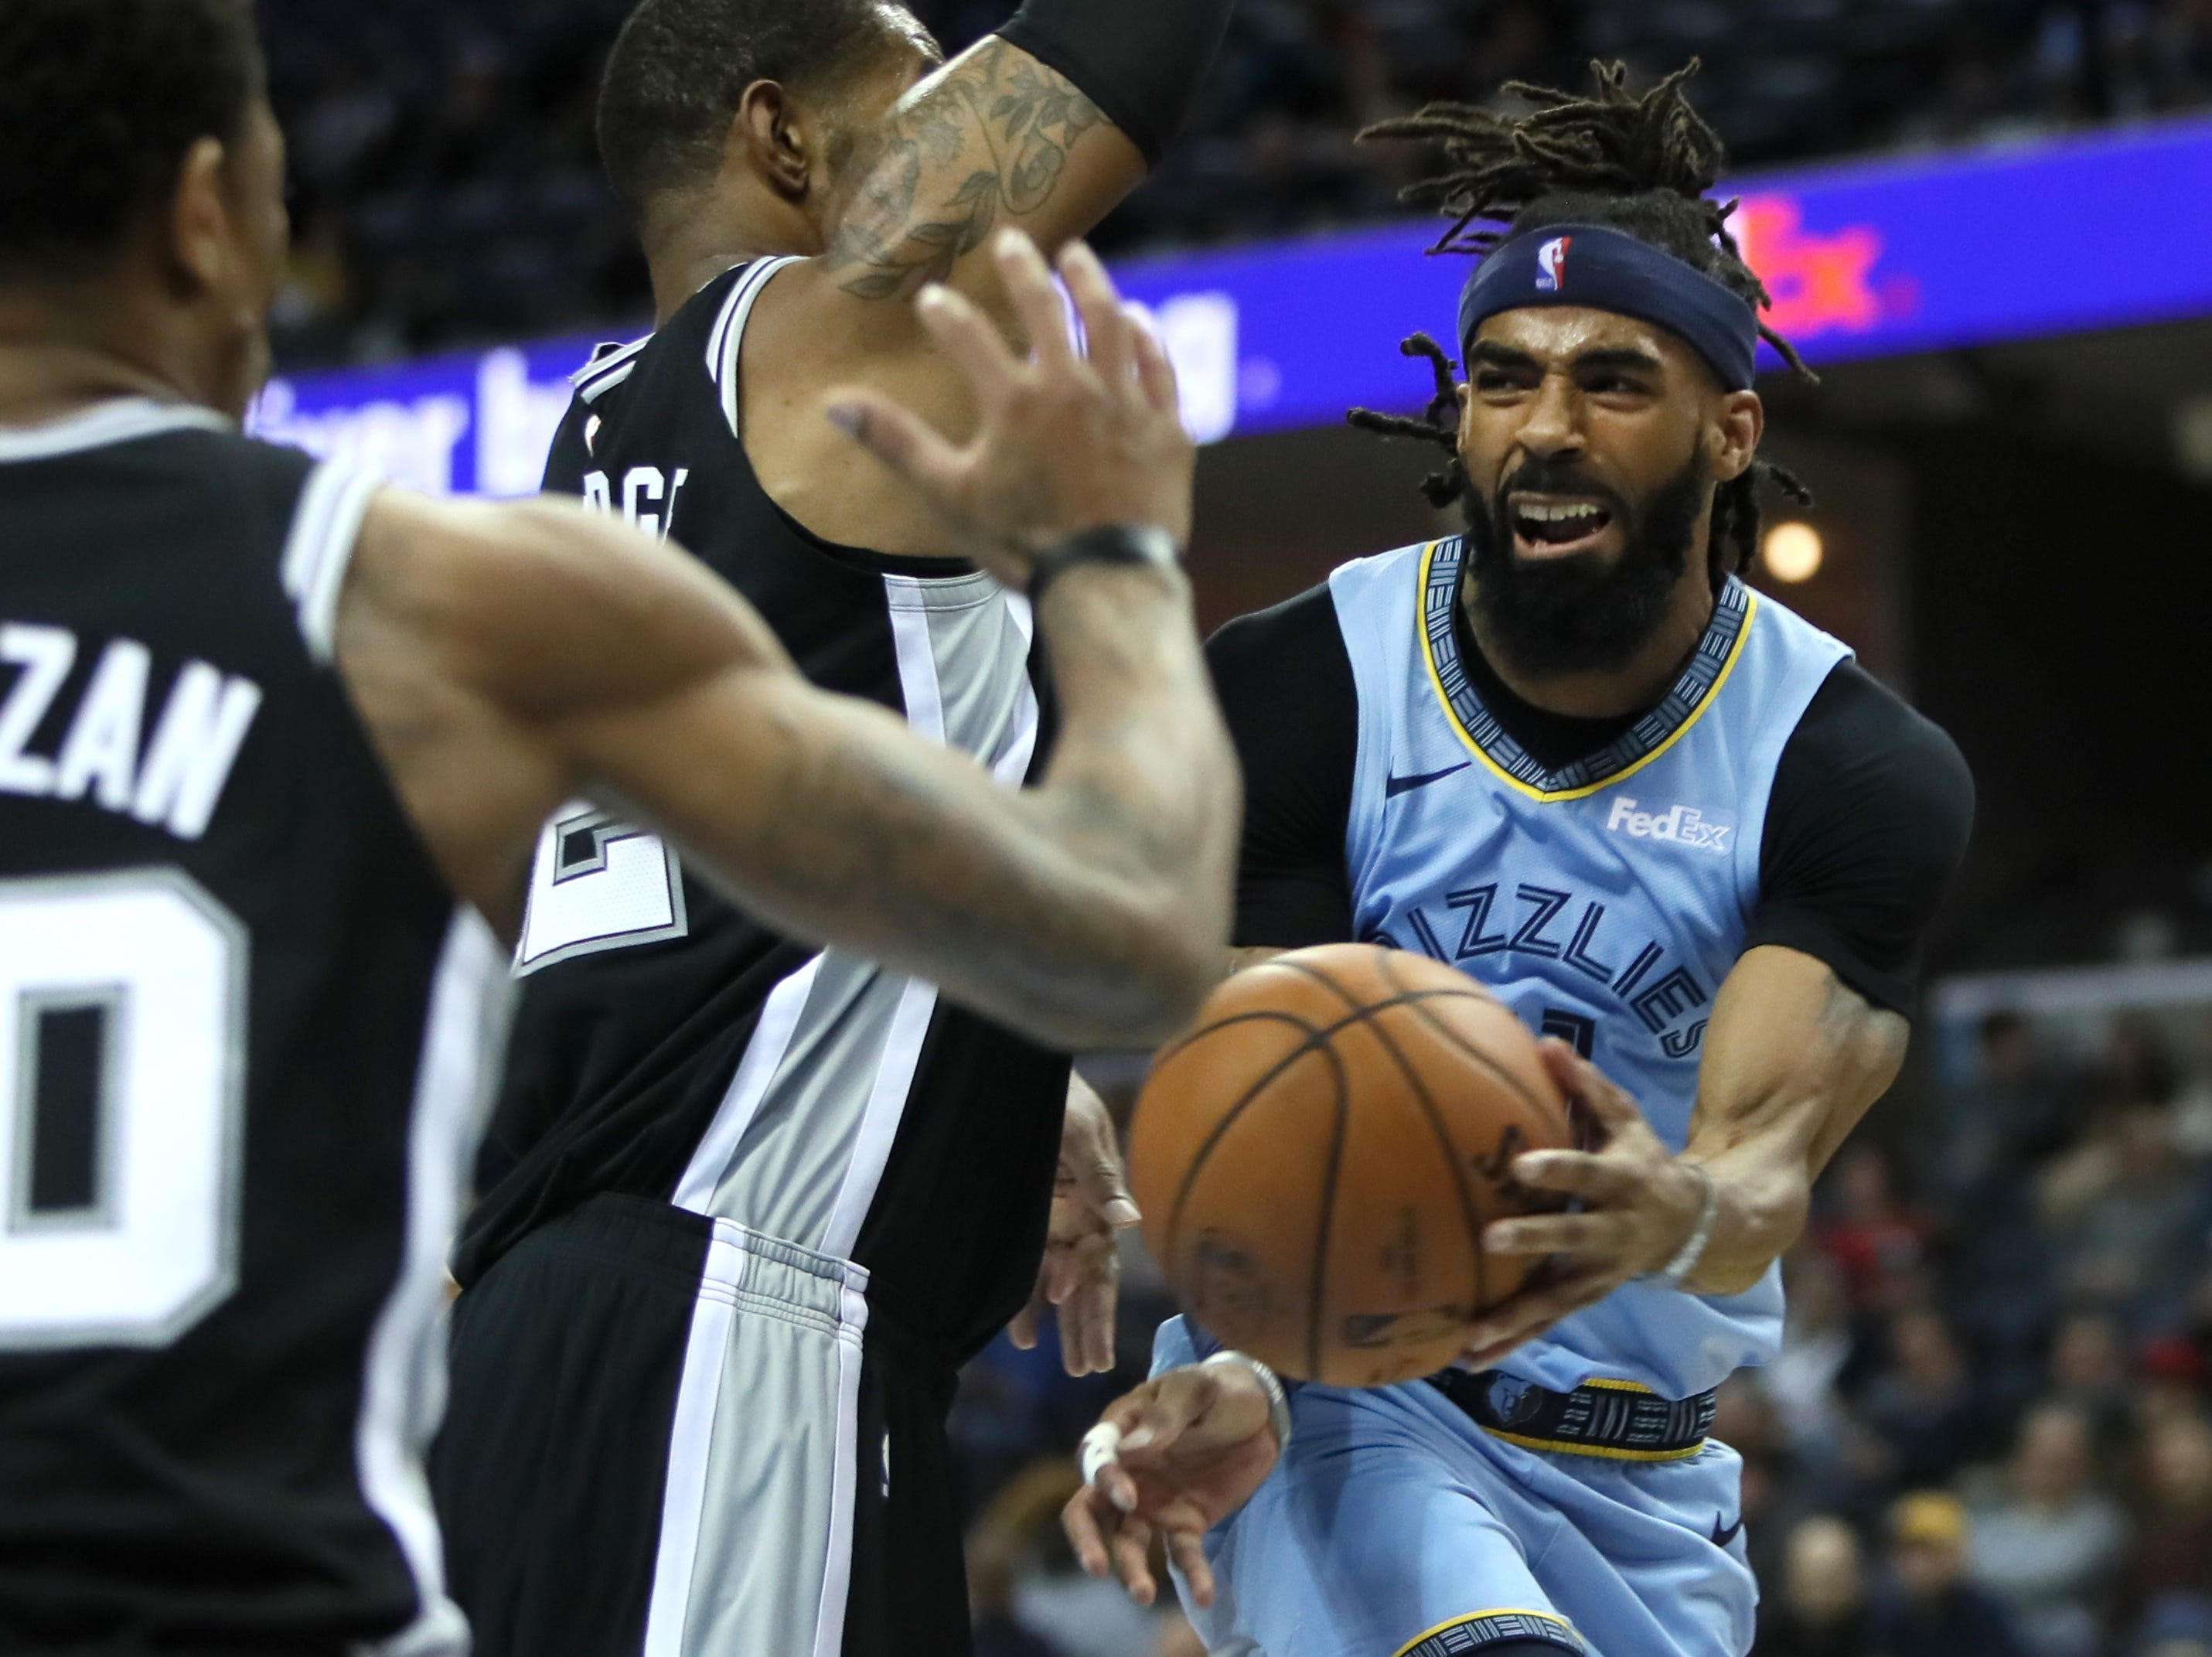 Memphis Grizzlies guard Mike Conley passes the ball past San Antonio Spurs defender LaMarcus Aldridge during their game at the FedExForum on Wednesday, Jan. 9, 2019.